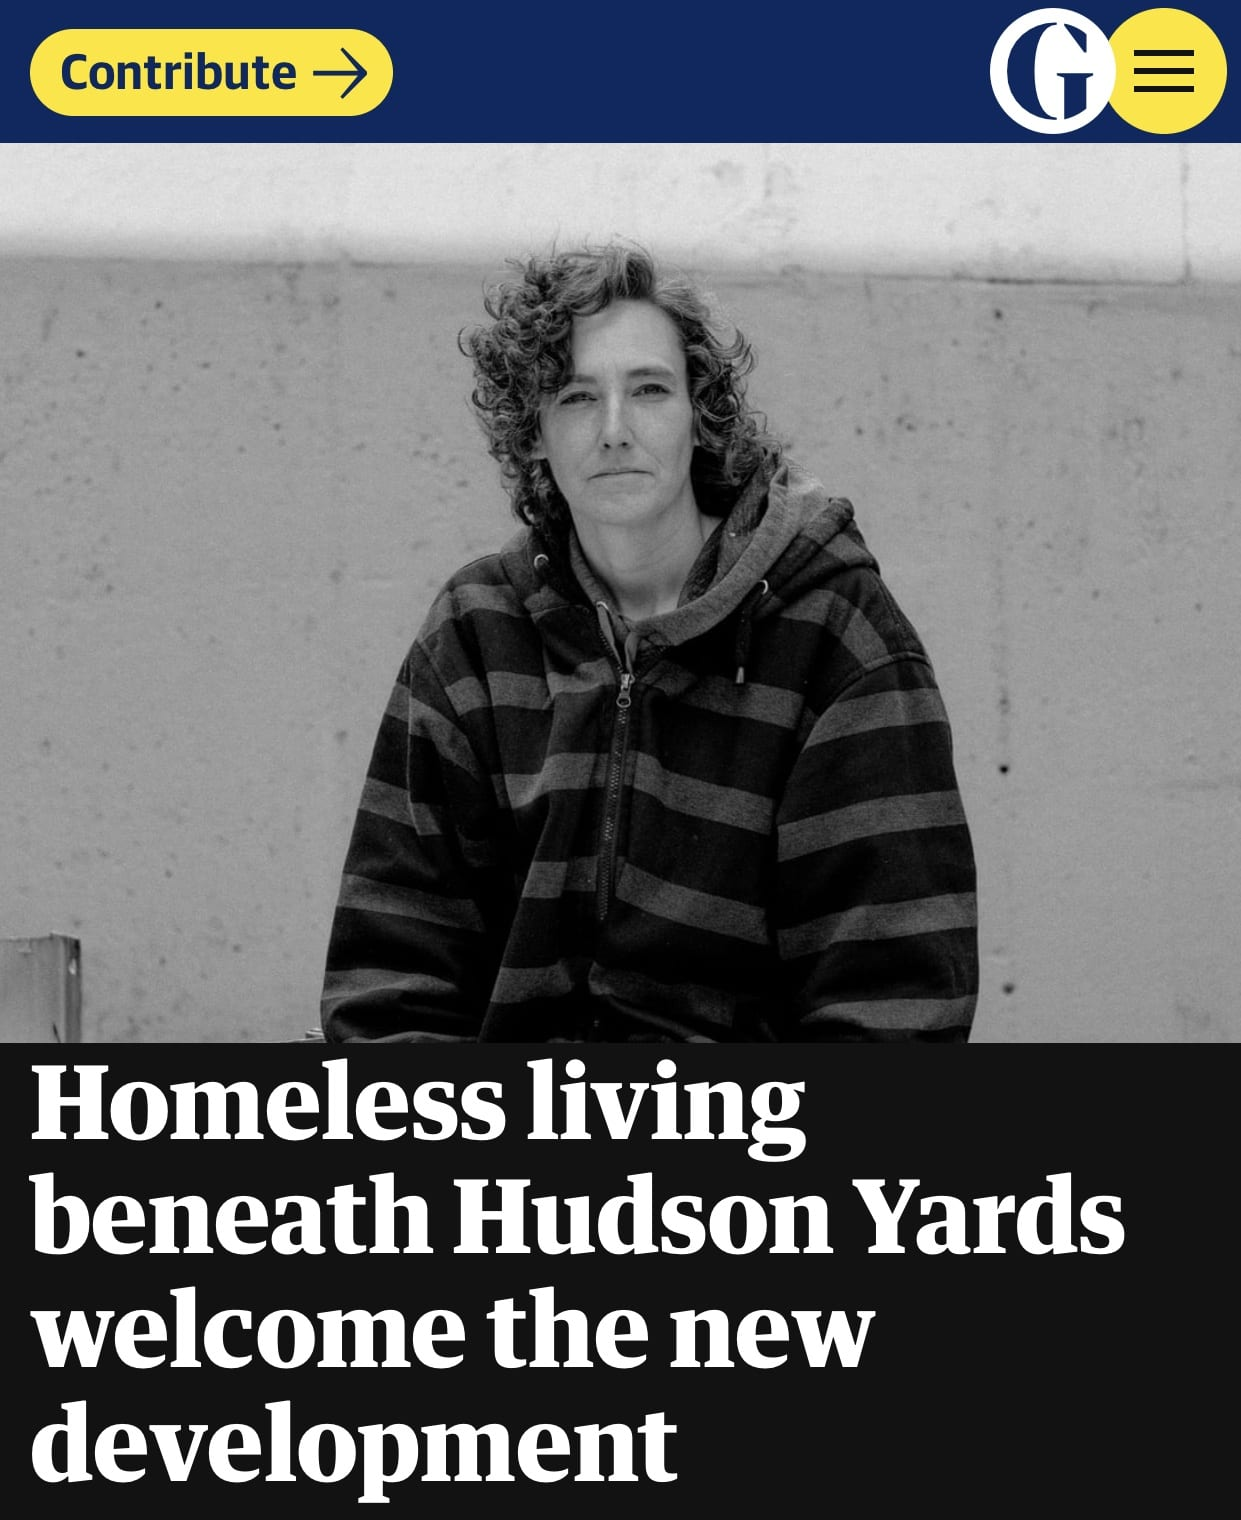 Homeless living beneath Hudson Yards welcome the new development #Sustainable system